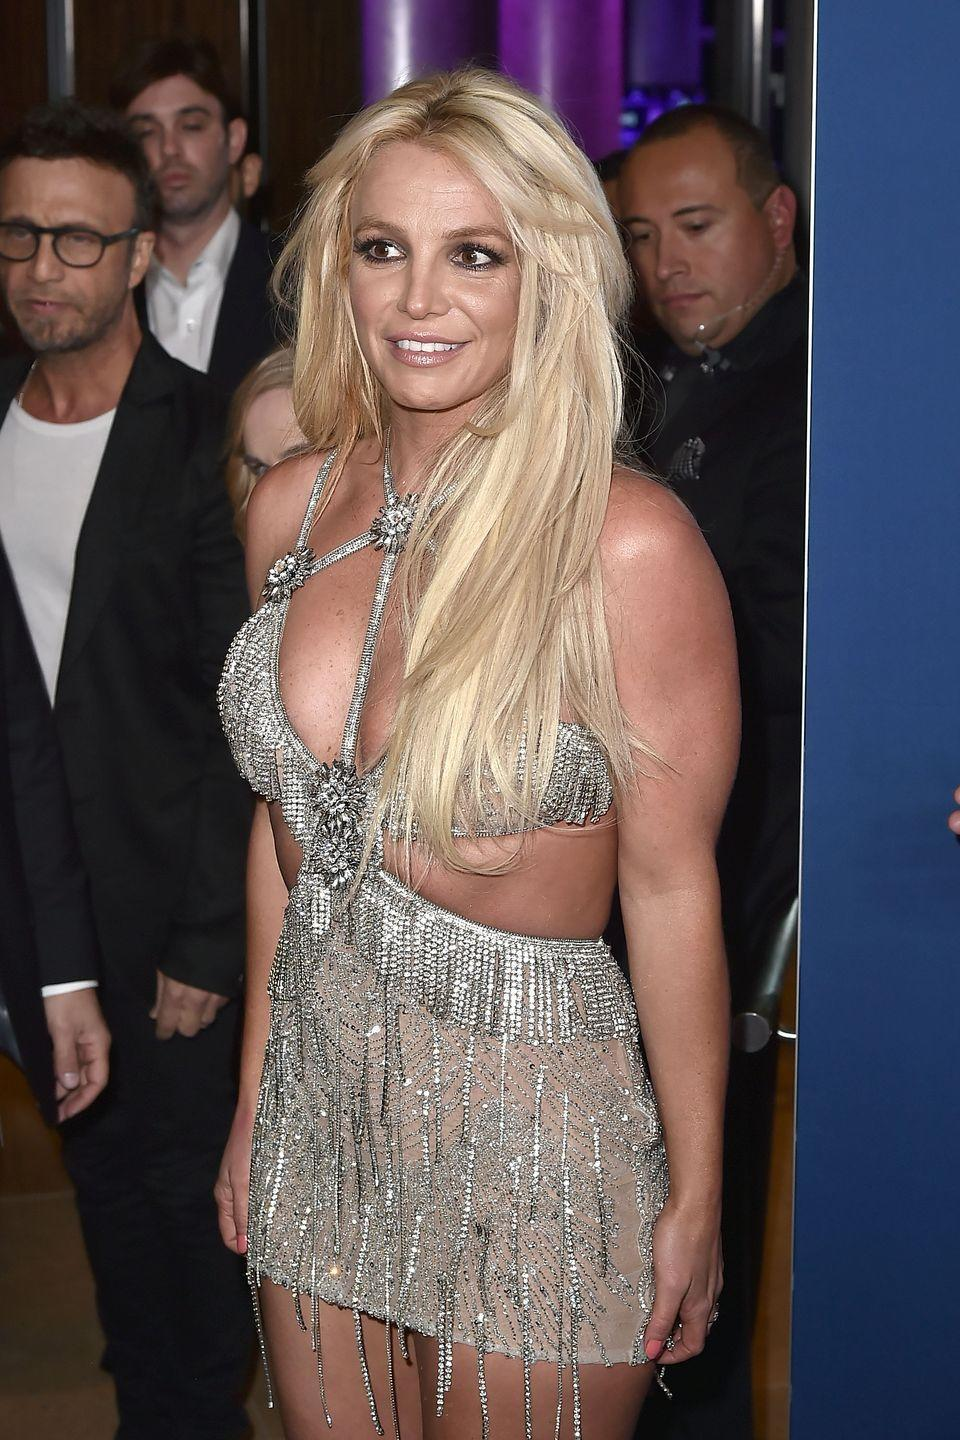 <p>Britney has rocked this style too many times to count. But, hey, it's iconic for a reason.</p>